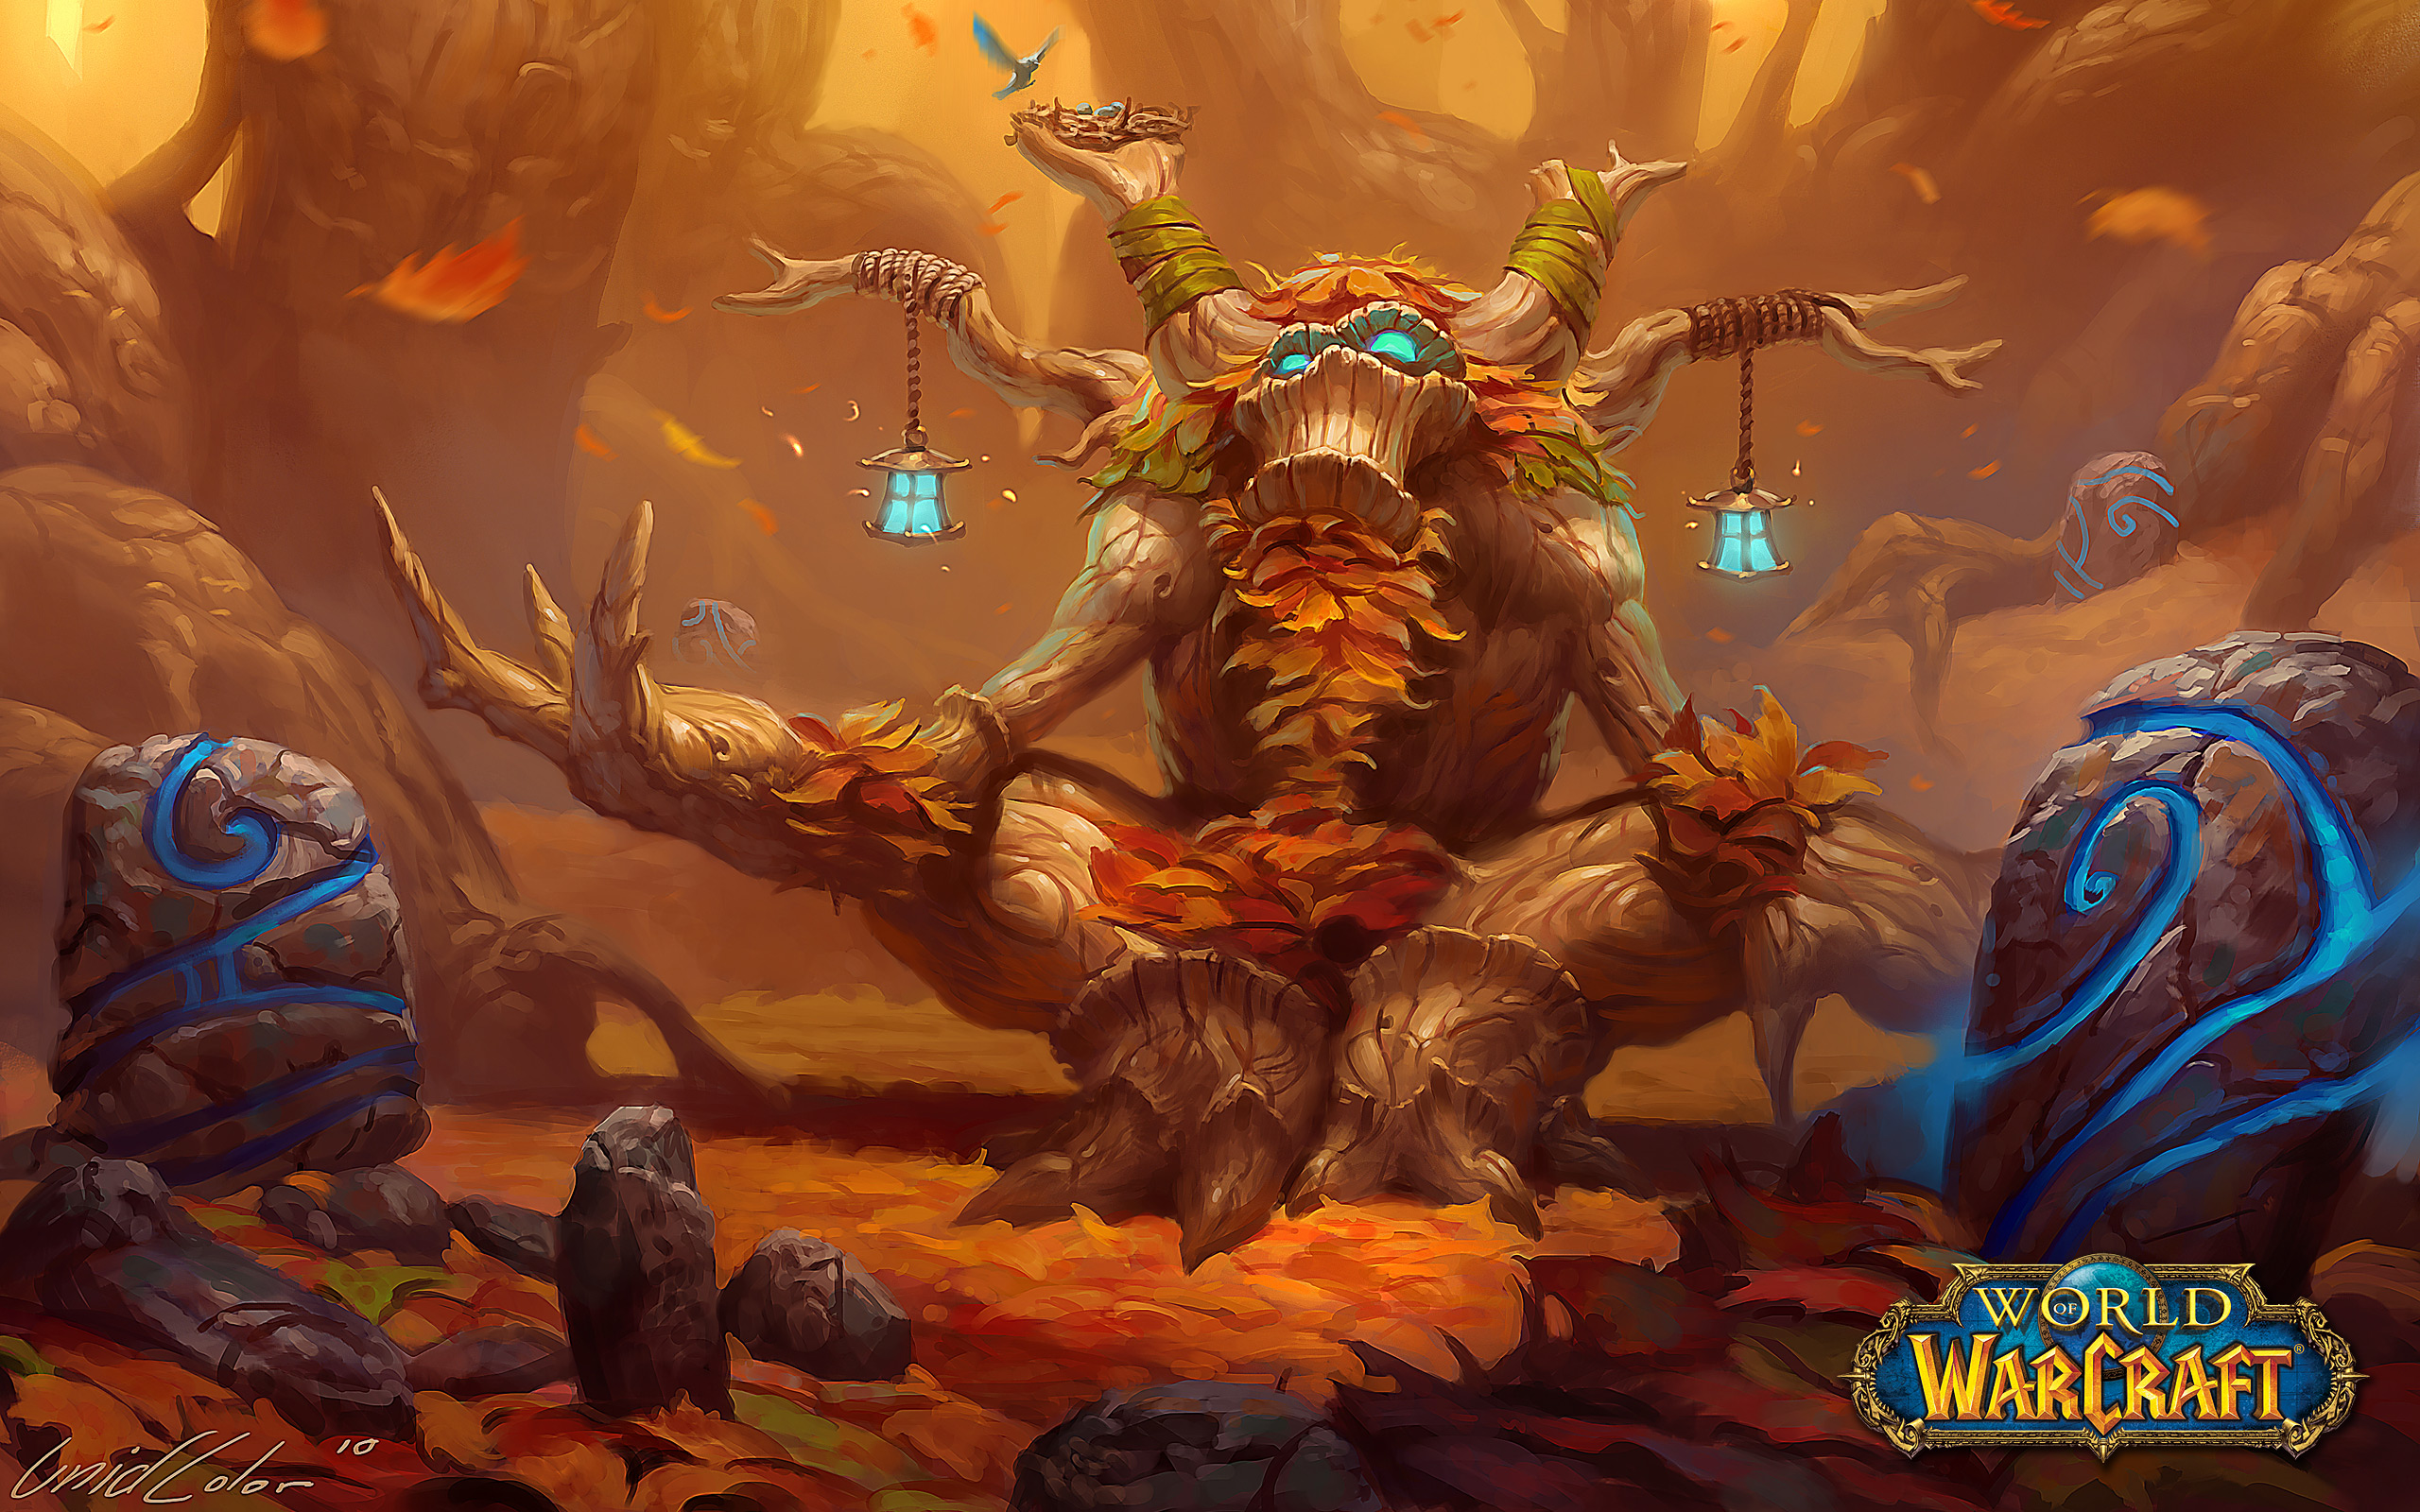 World of Warcraft wallpaper 35